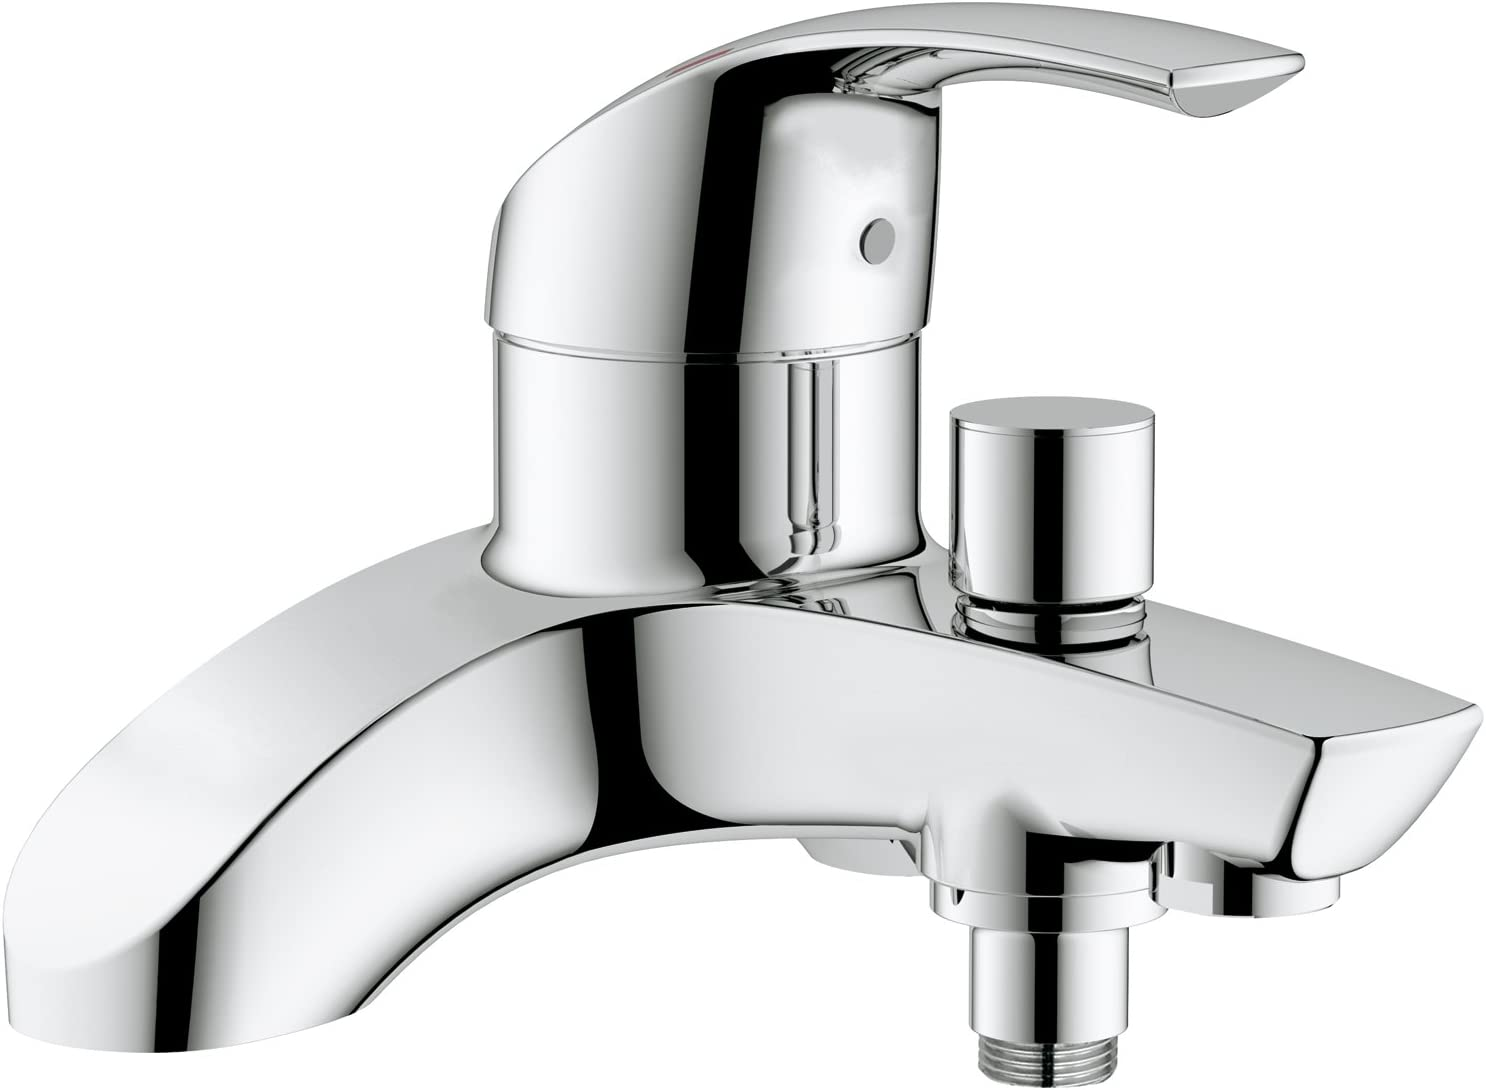 GROHE Eurosmart single-lever bath tap, bath and shower mixer, wall mounted, easy to clean, easy installation, chrome, 25105000